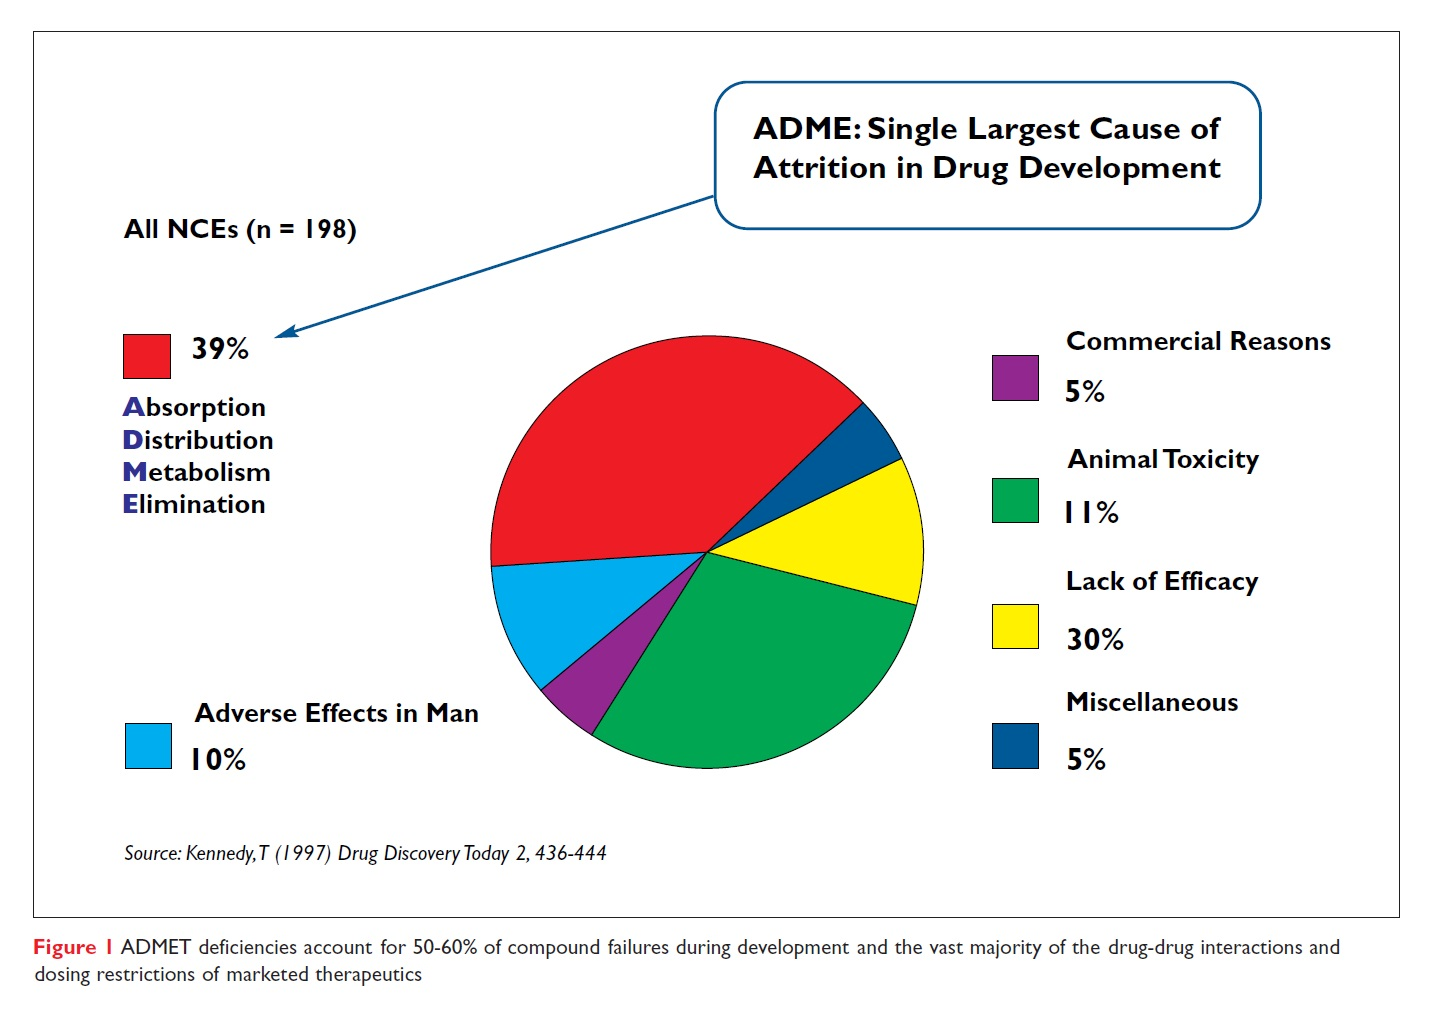 Figure 1 ADMET deficiencies account for 50-60% of compound failures during development